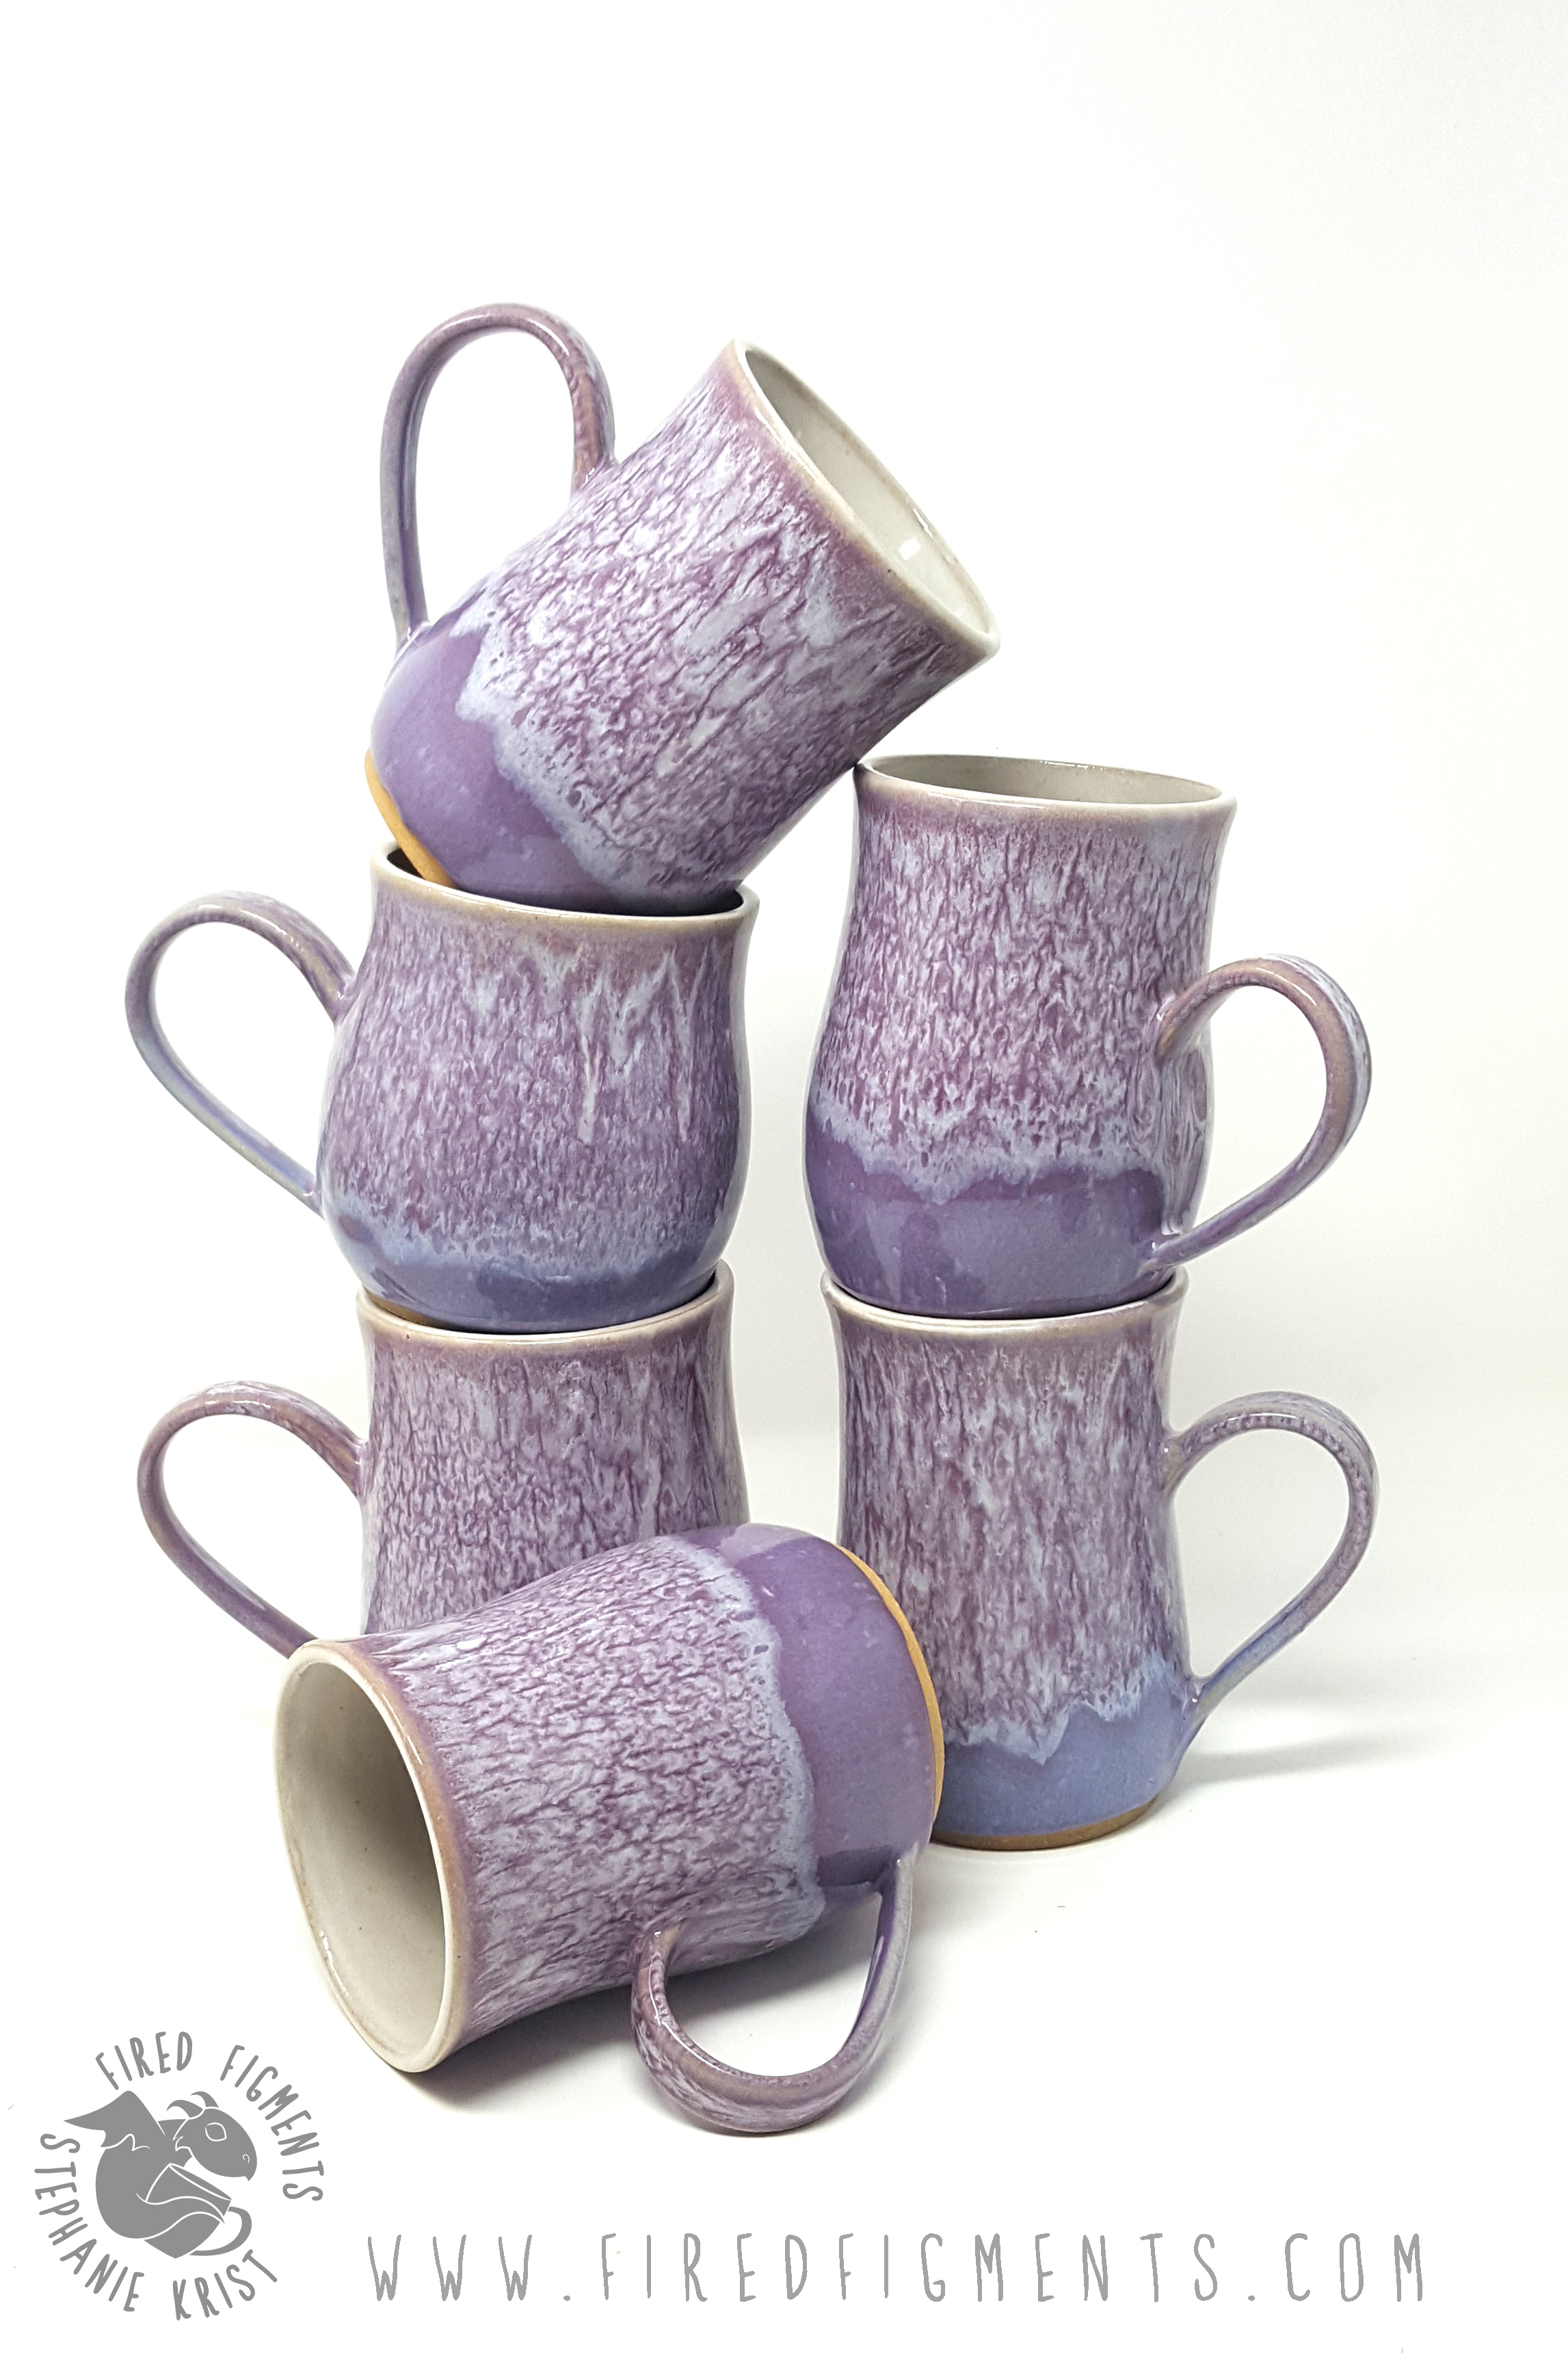 fired_figments_purple_mugs.jpg